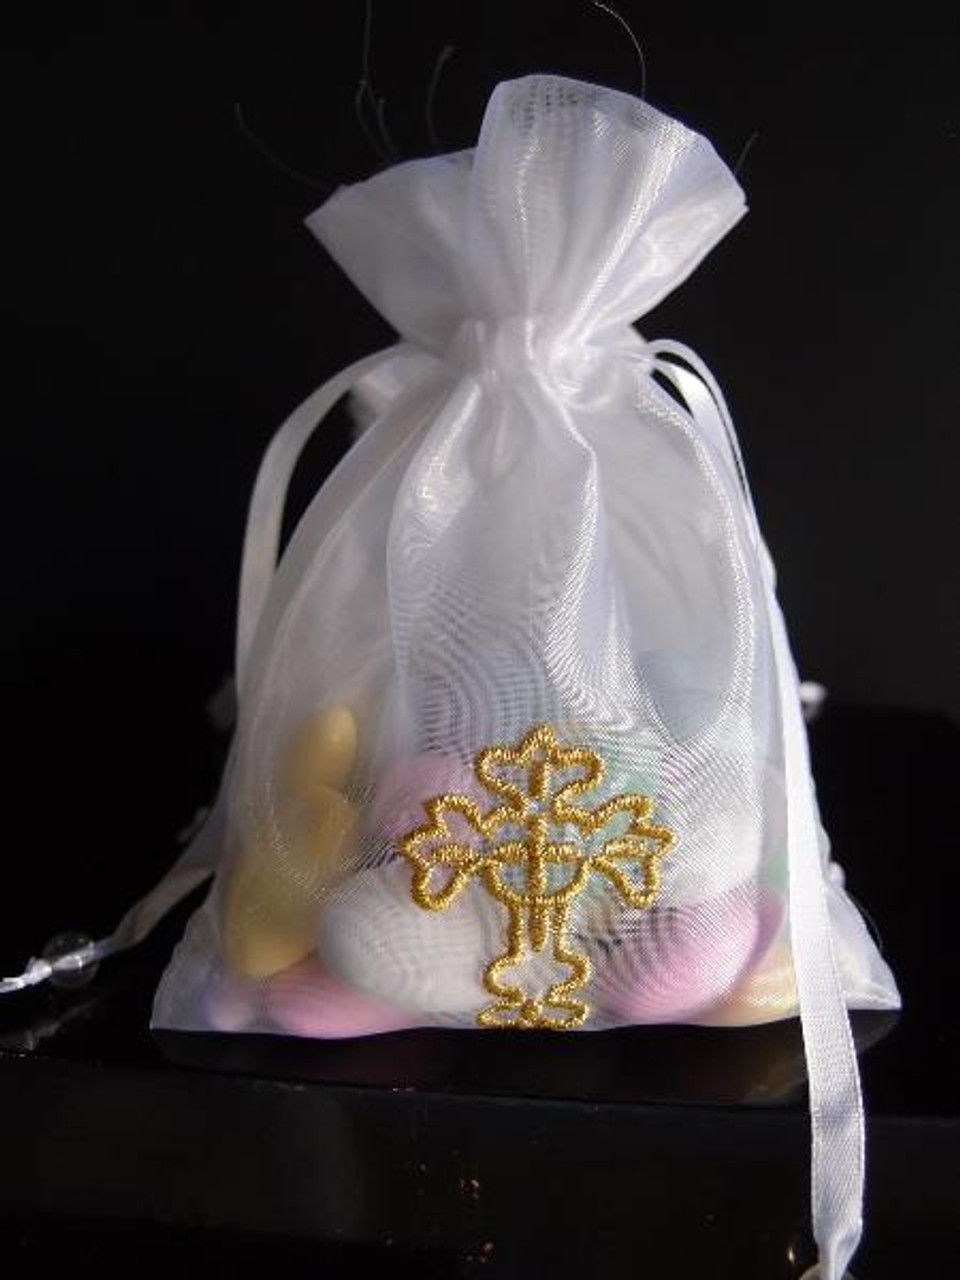 Wholesale White Organza Bags, Gift Packaging | Packaging Decor